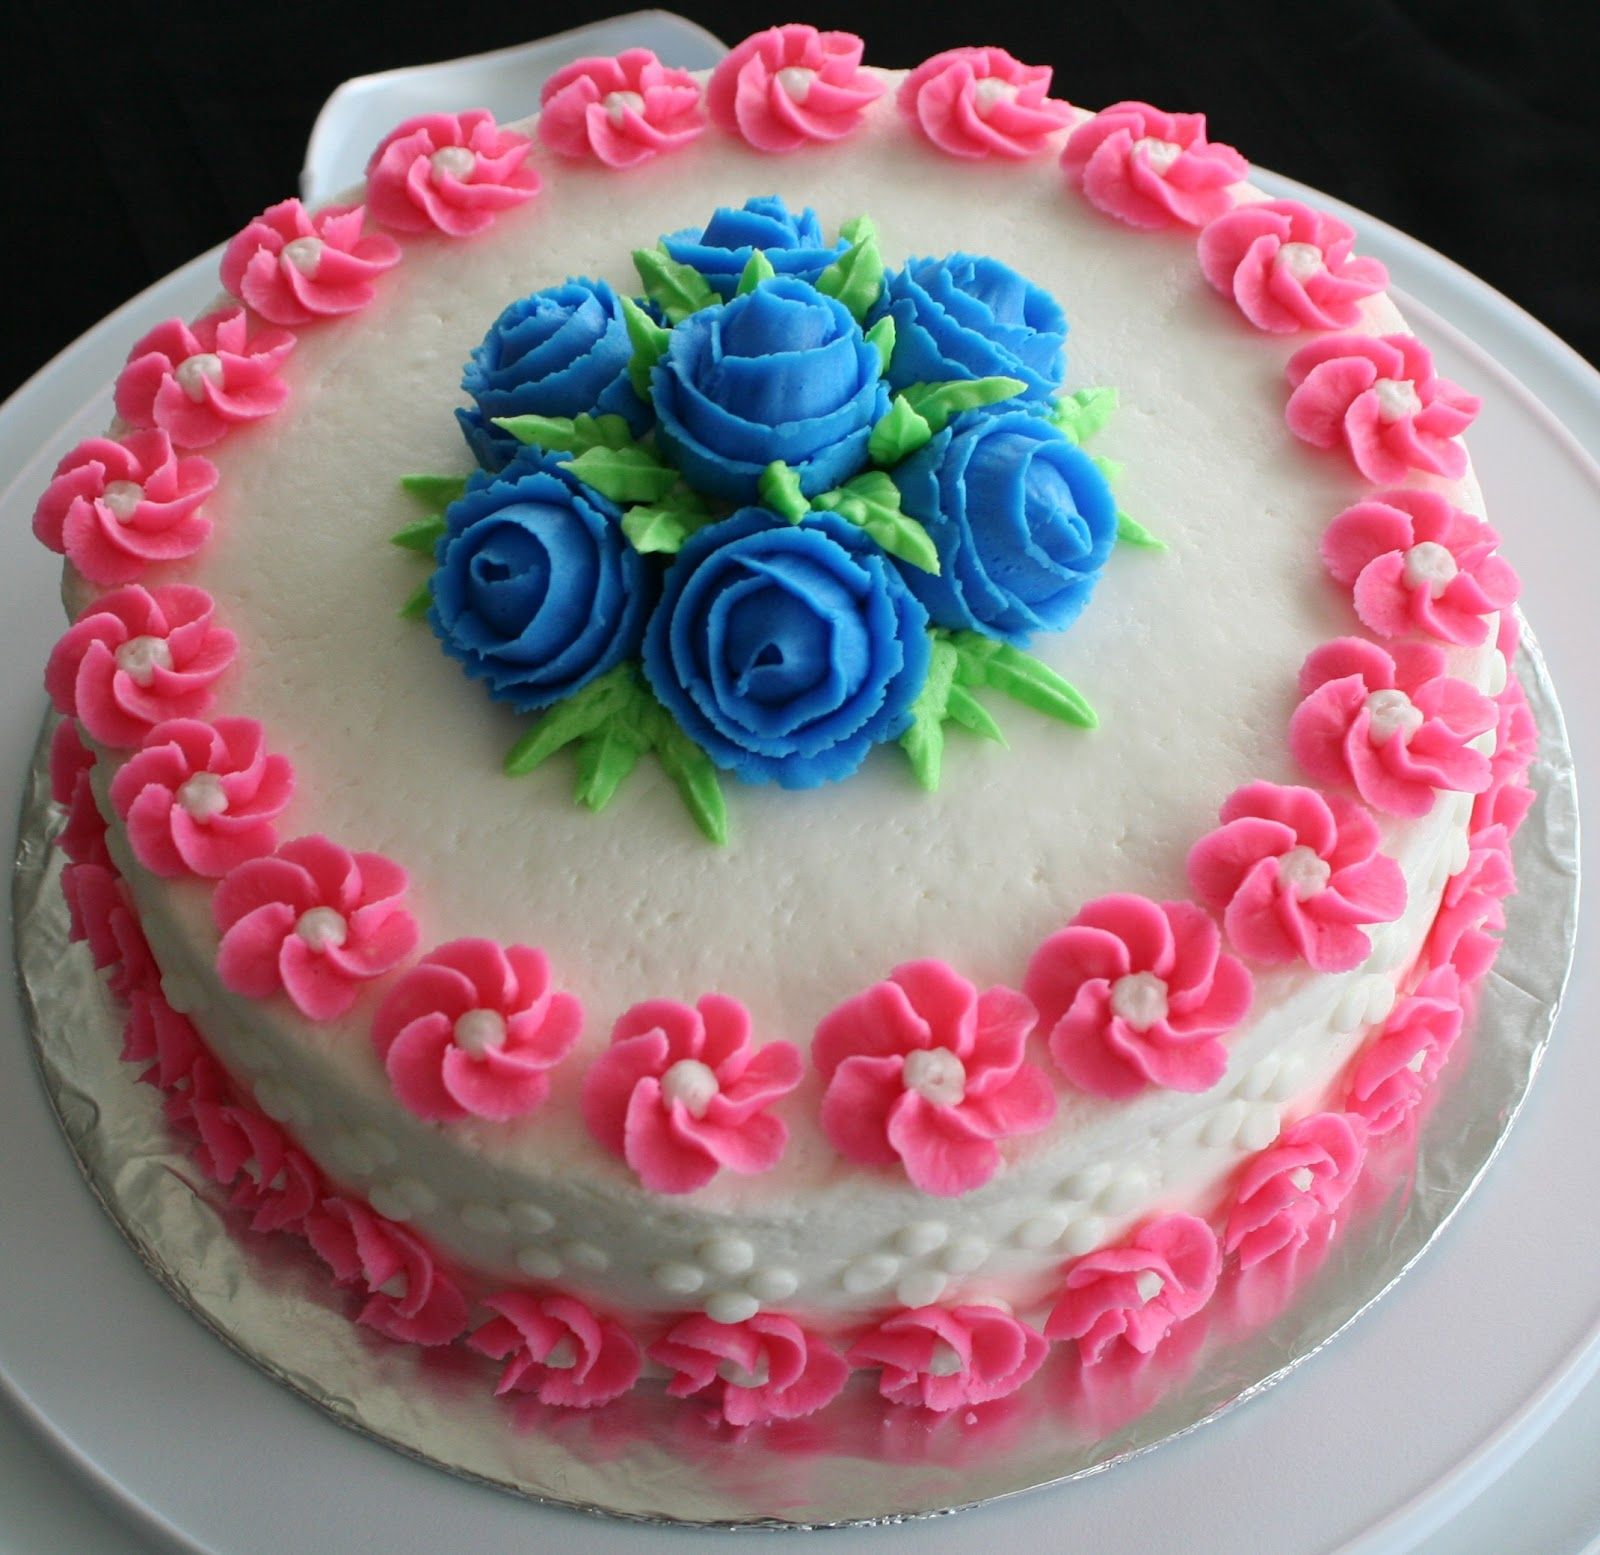 Birthday Cake Ideas Wilton : buttercream flowers - Google Search All about cakes ...